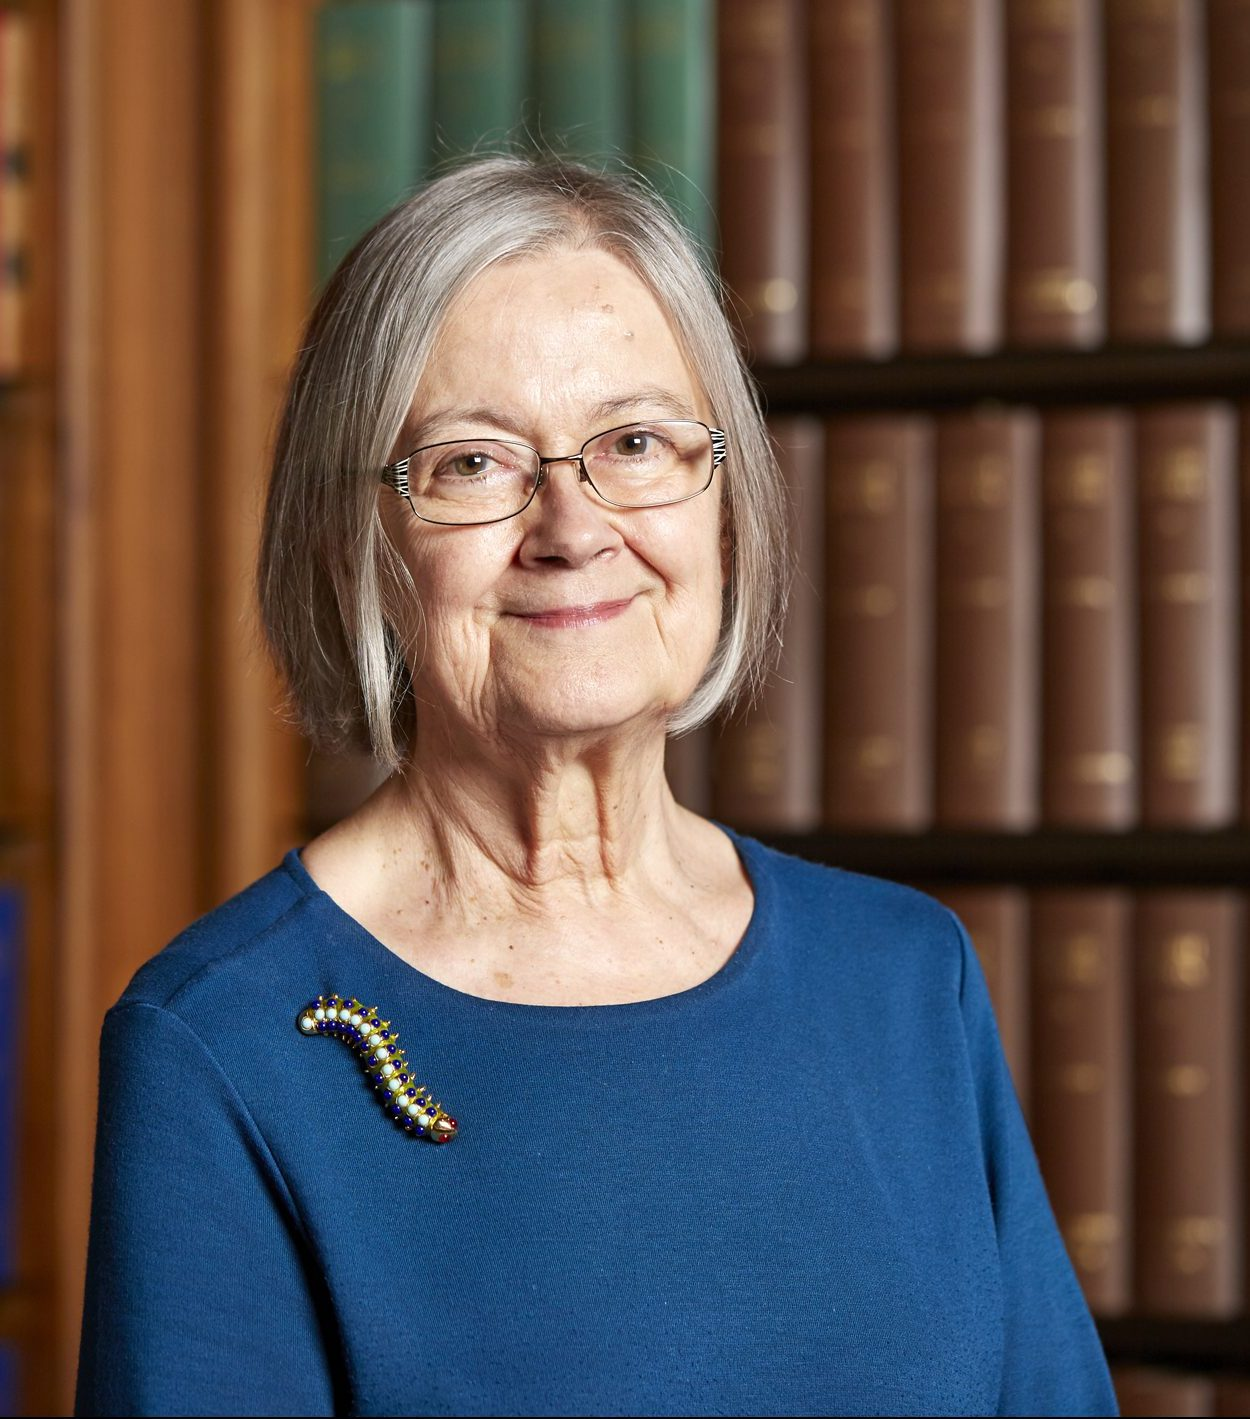 The Right Hon the Baroness Hale of Richmond DBE